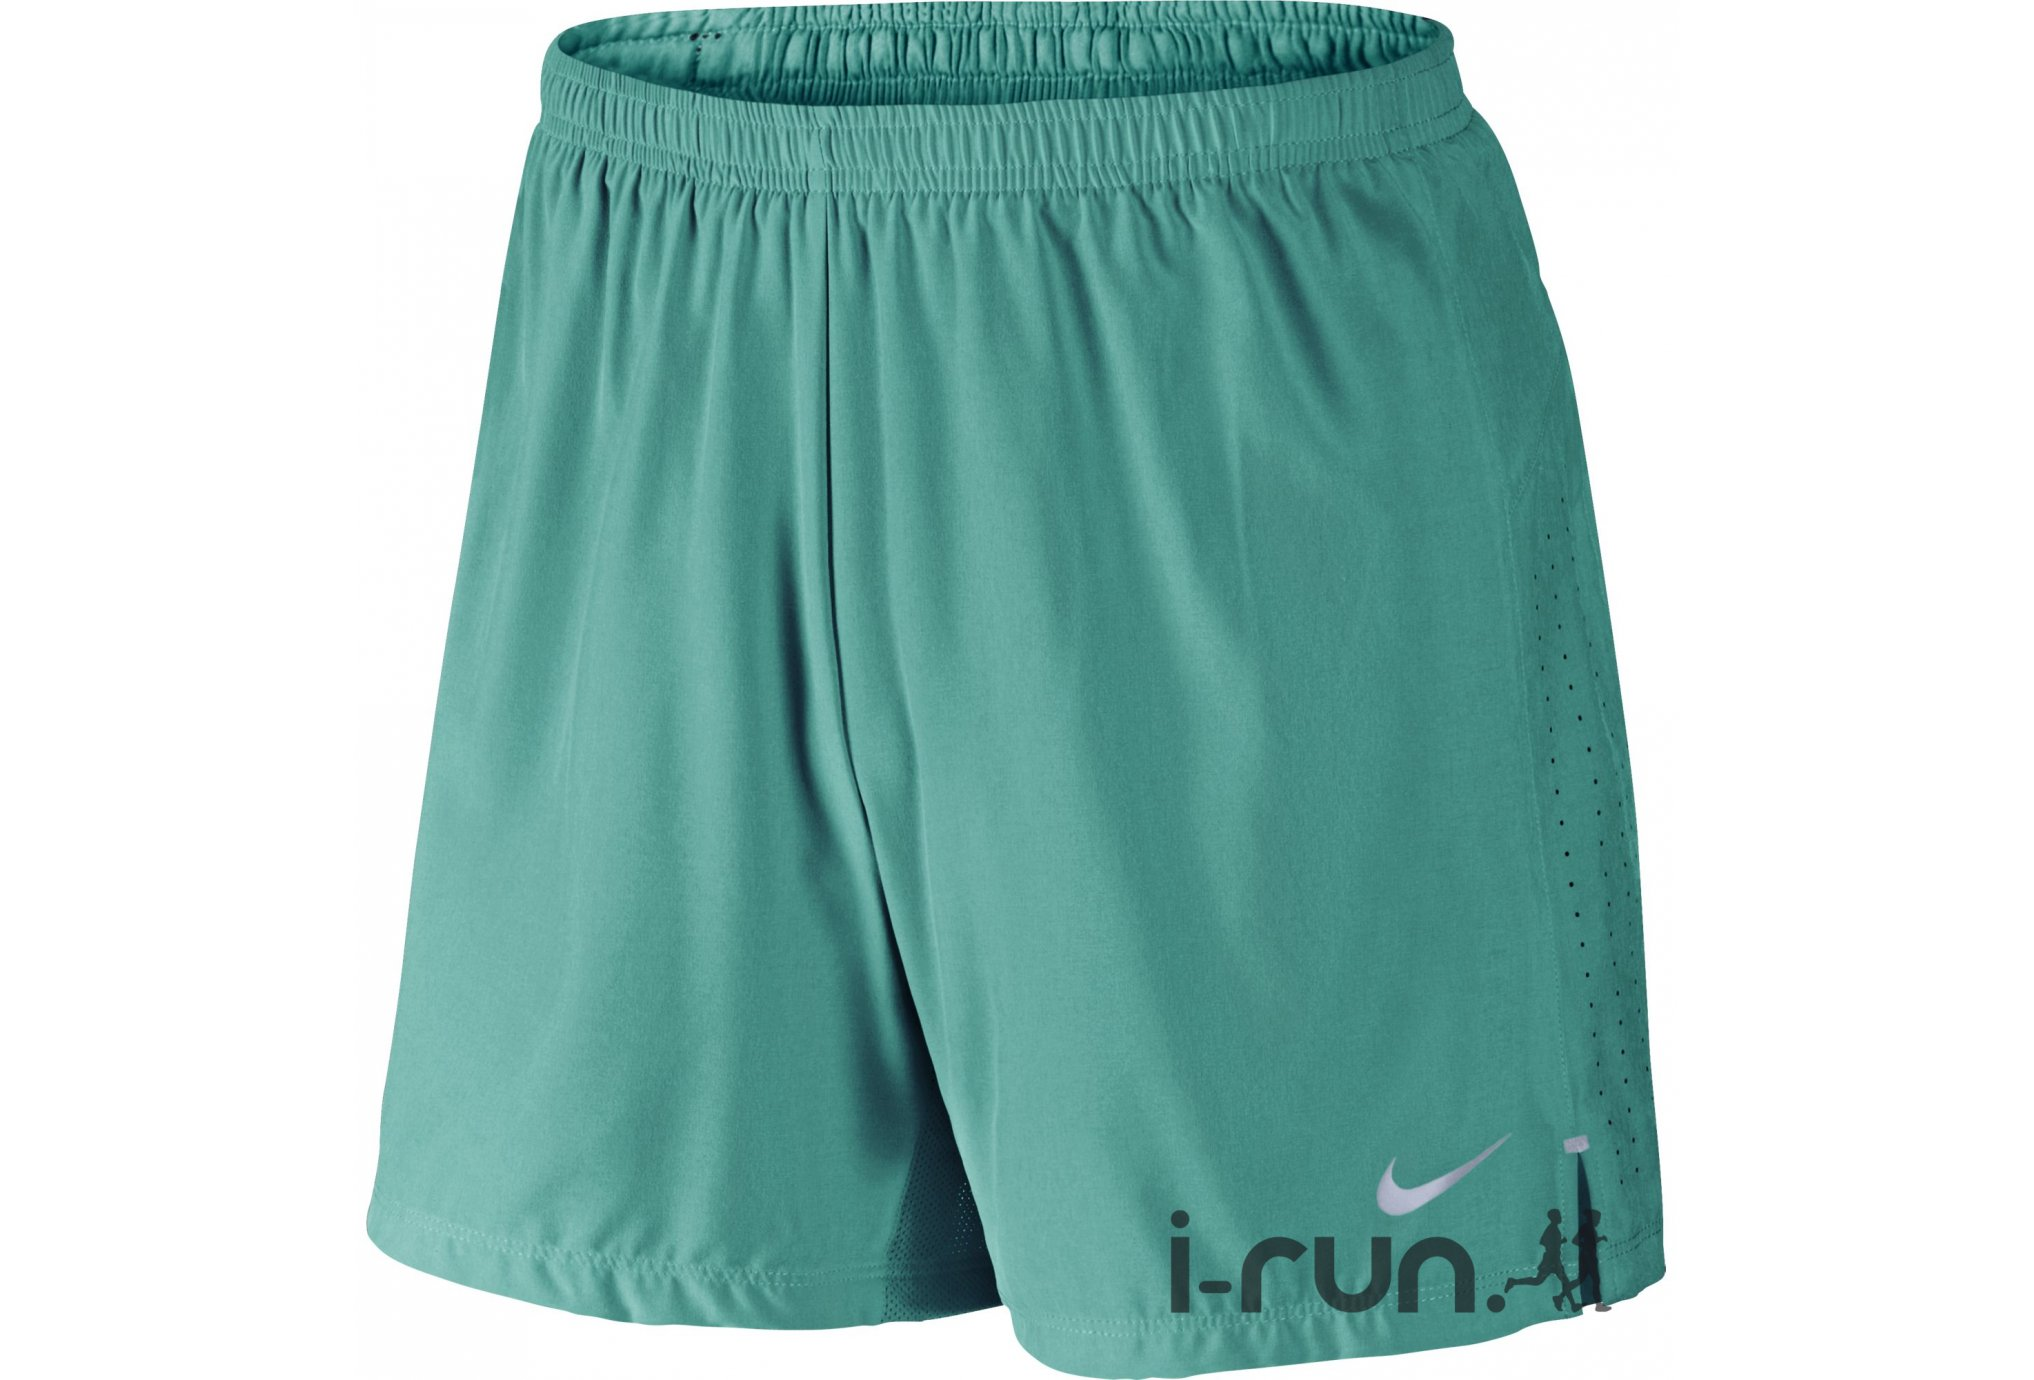 Nike Short Phenom 12.5cm 2-IN-1 M Di�t�tique V�tements homme